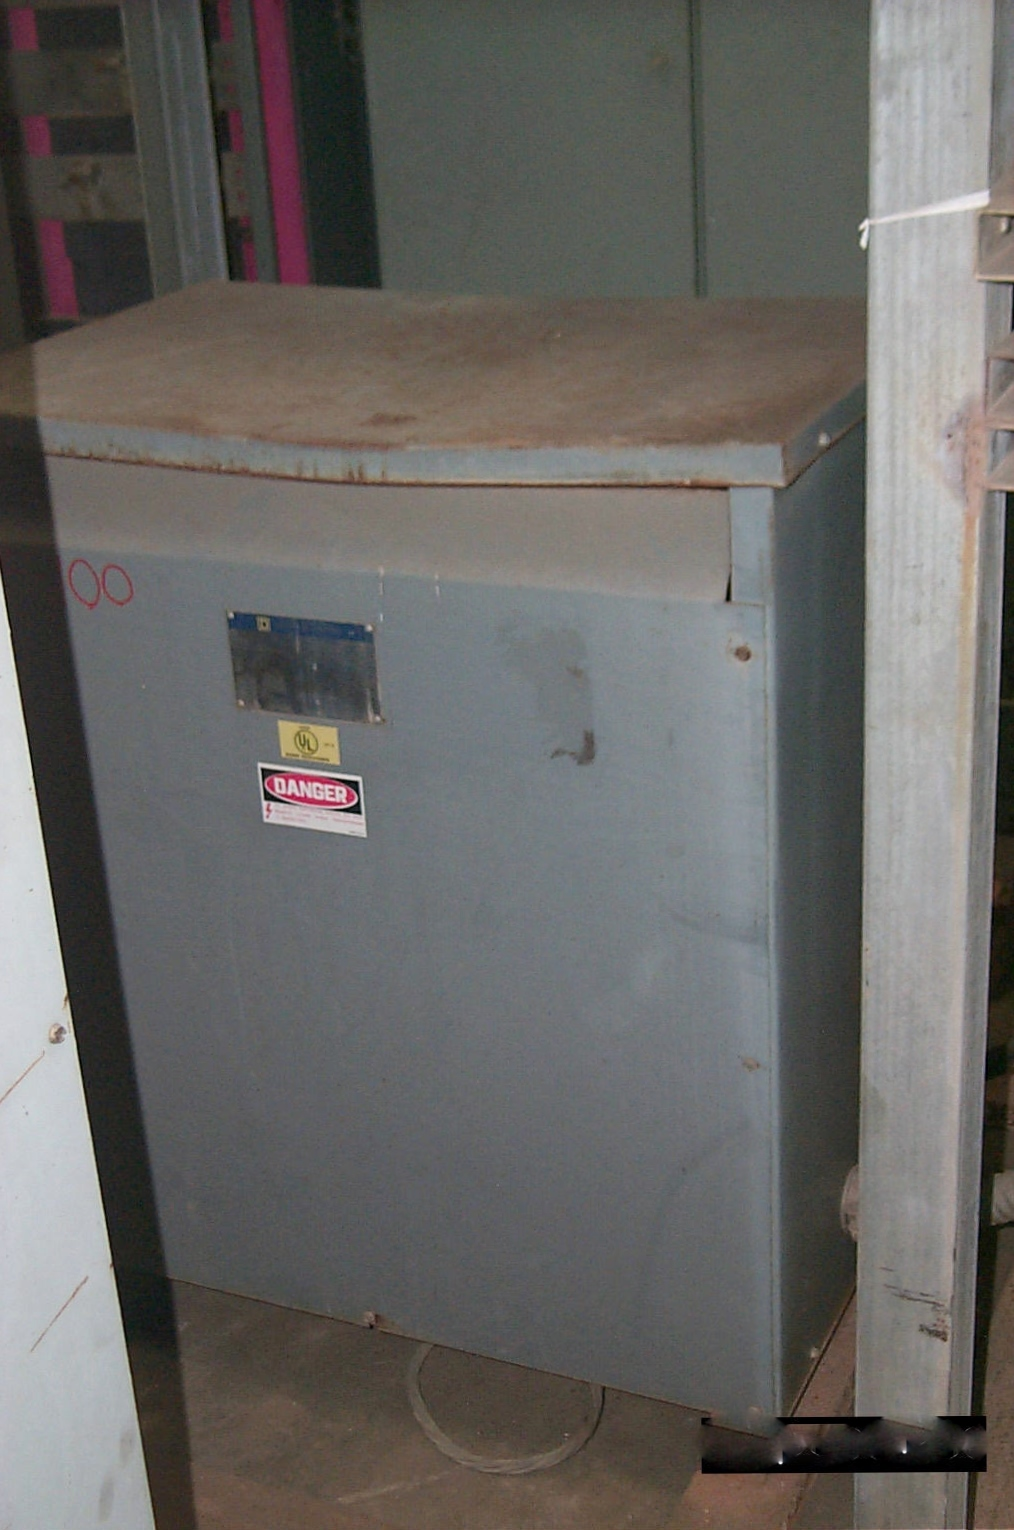 Square D 150 KVA 480-208Y/120 Dry Type Transformer